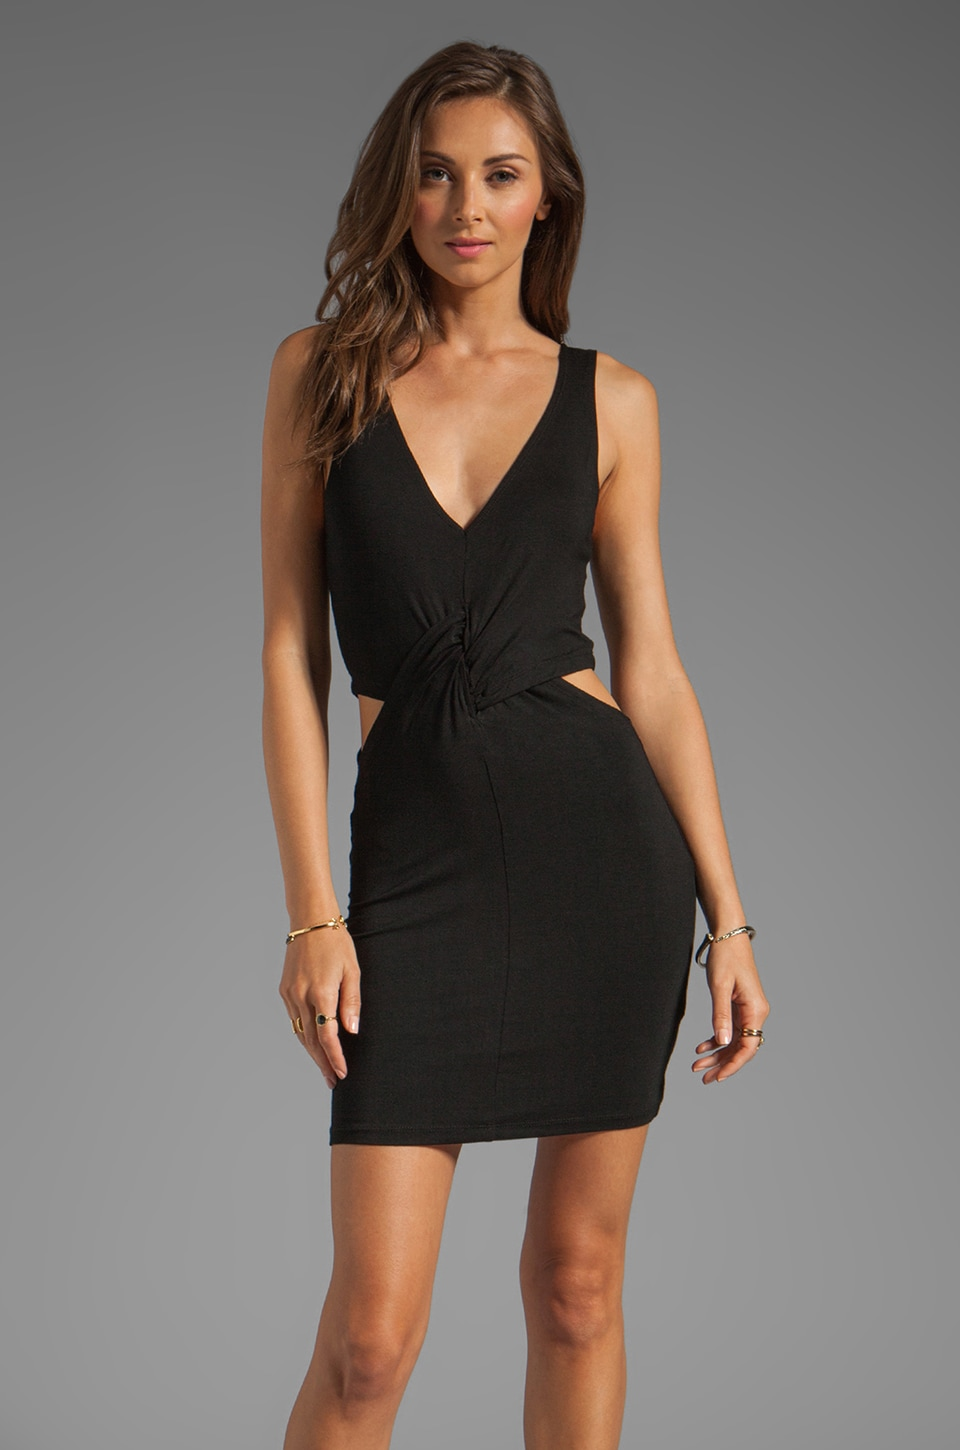 Lovers + Friends Hard Day's Night Dress with Side Cut Outs in Black